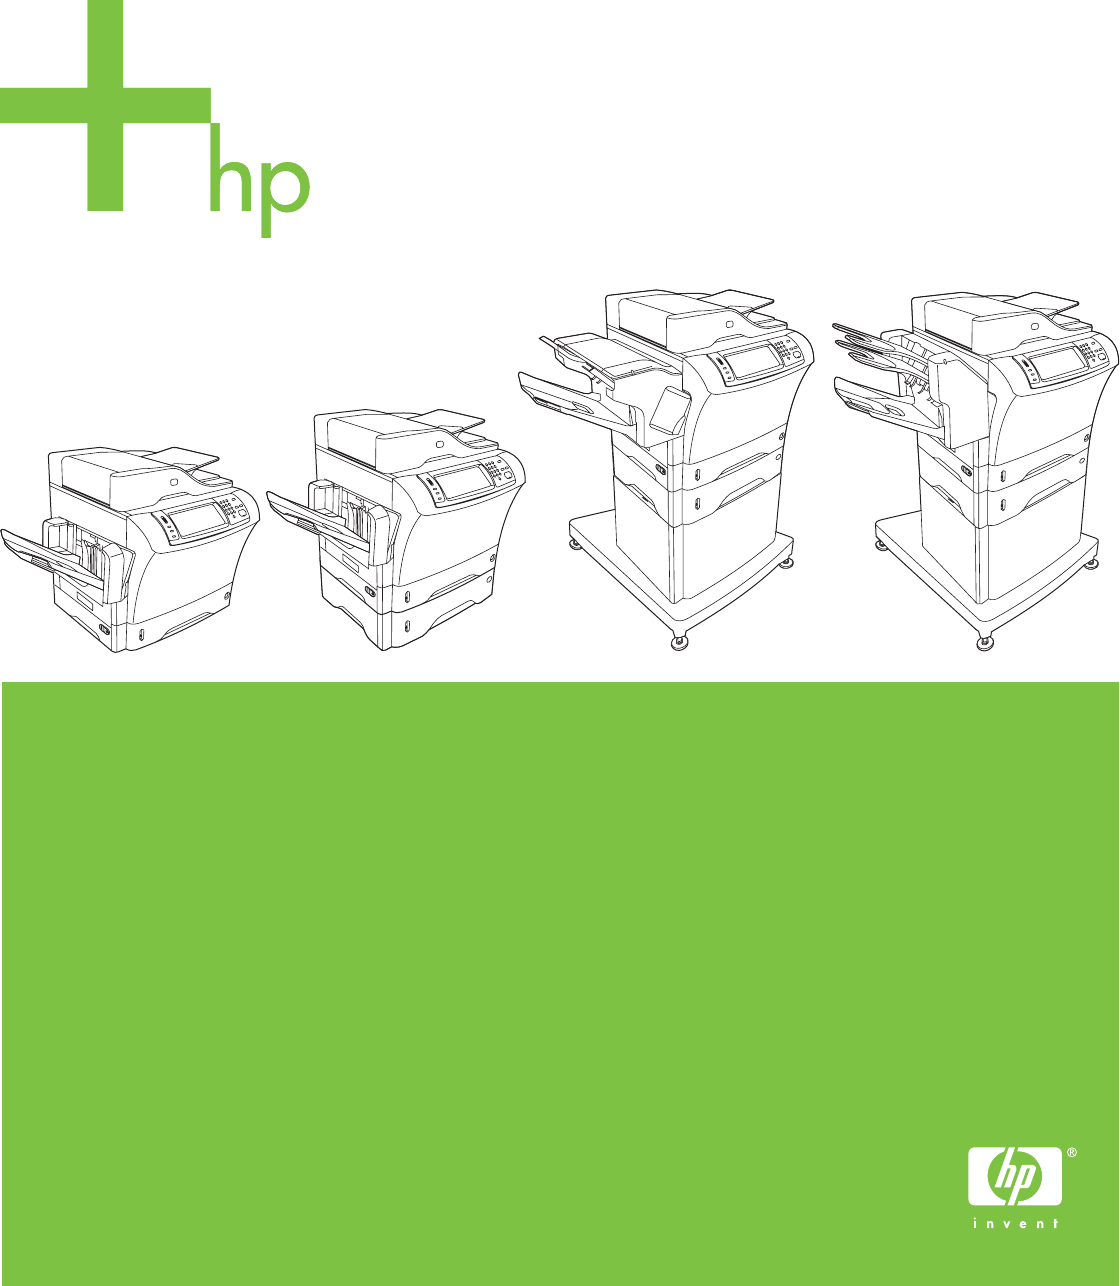 hp laserjet m4345 mfp service manual rh dectrader com hp 4345 printer service manual hp 4345 service manual pdf